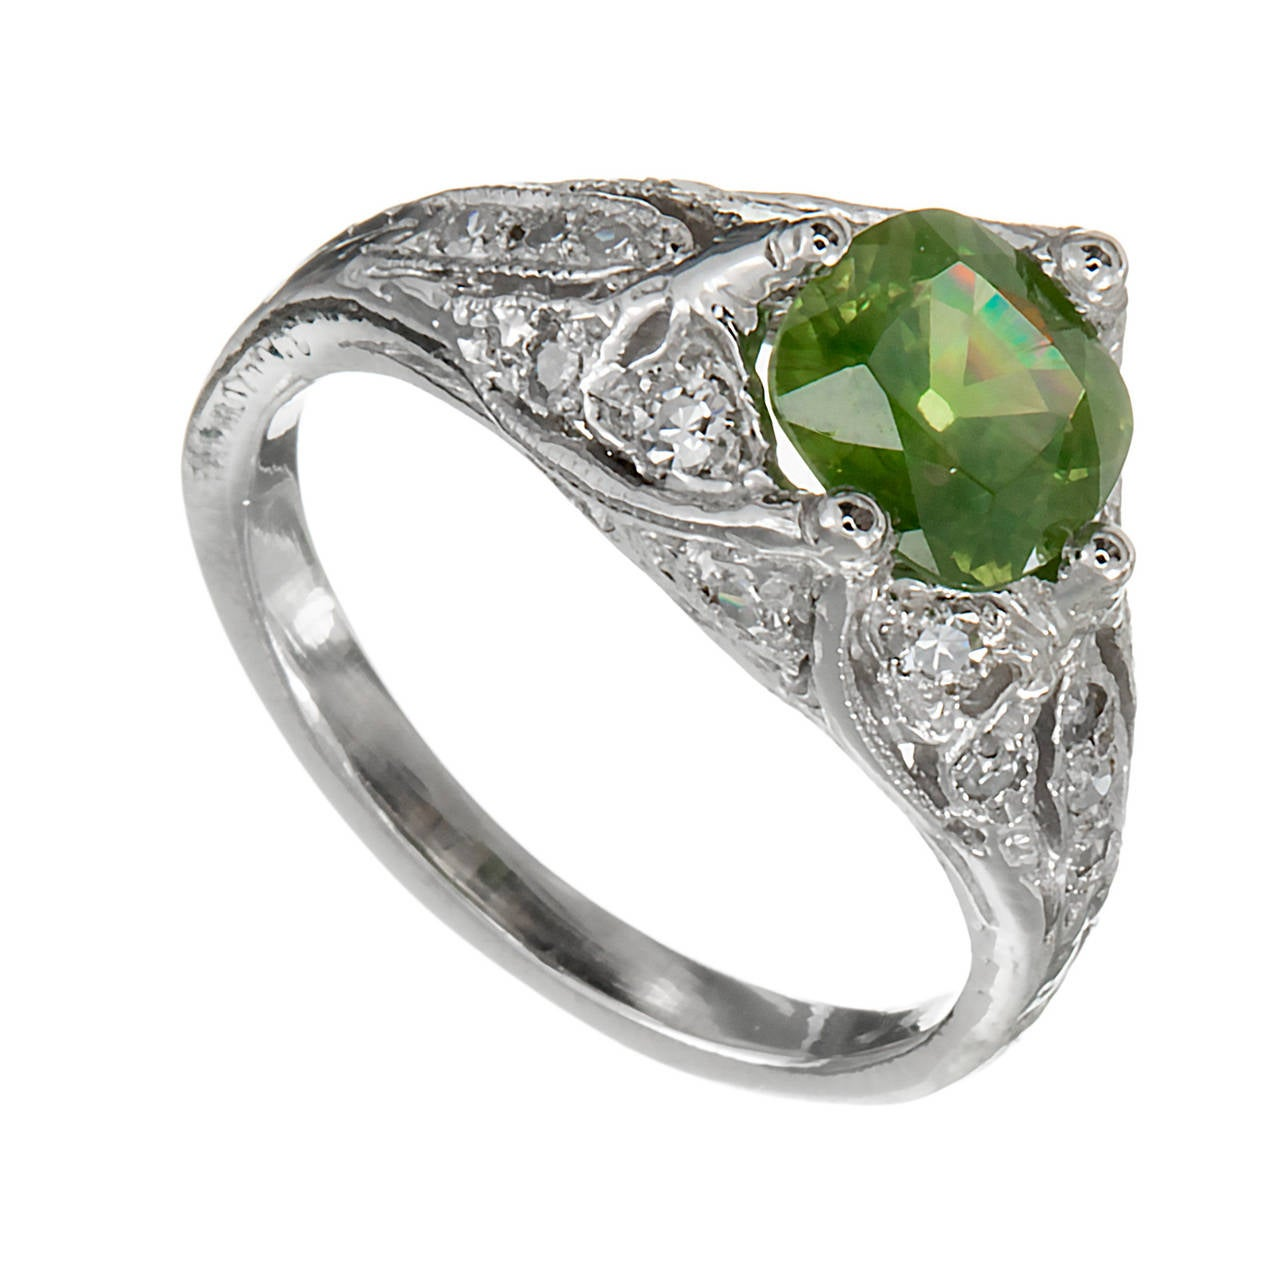 Green Demantoid Garnet Diamond Platinum Ring